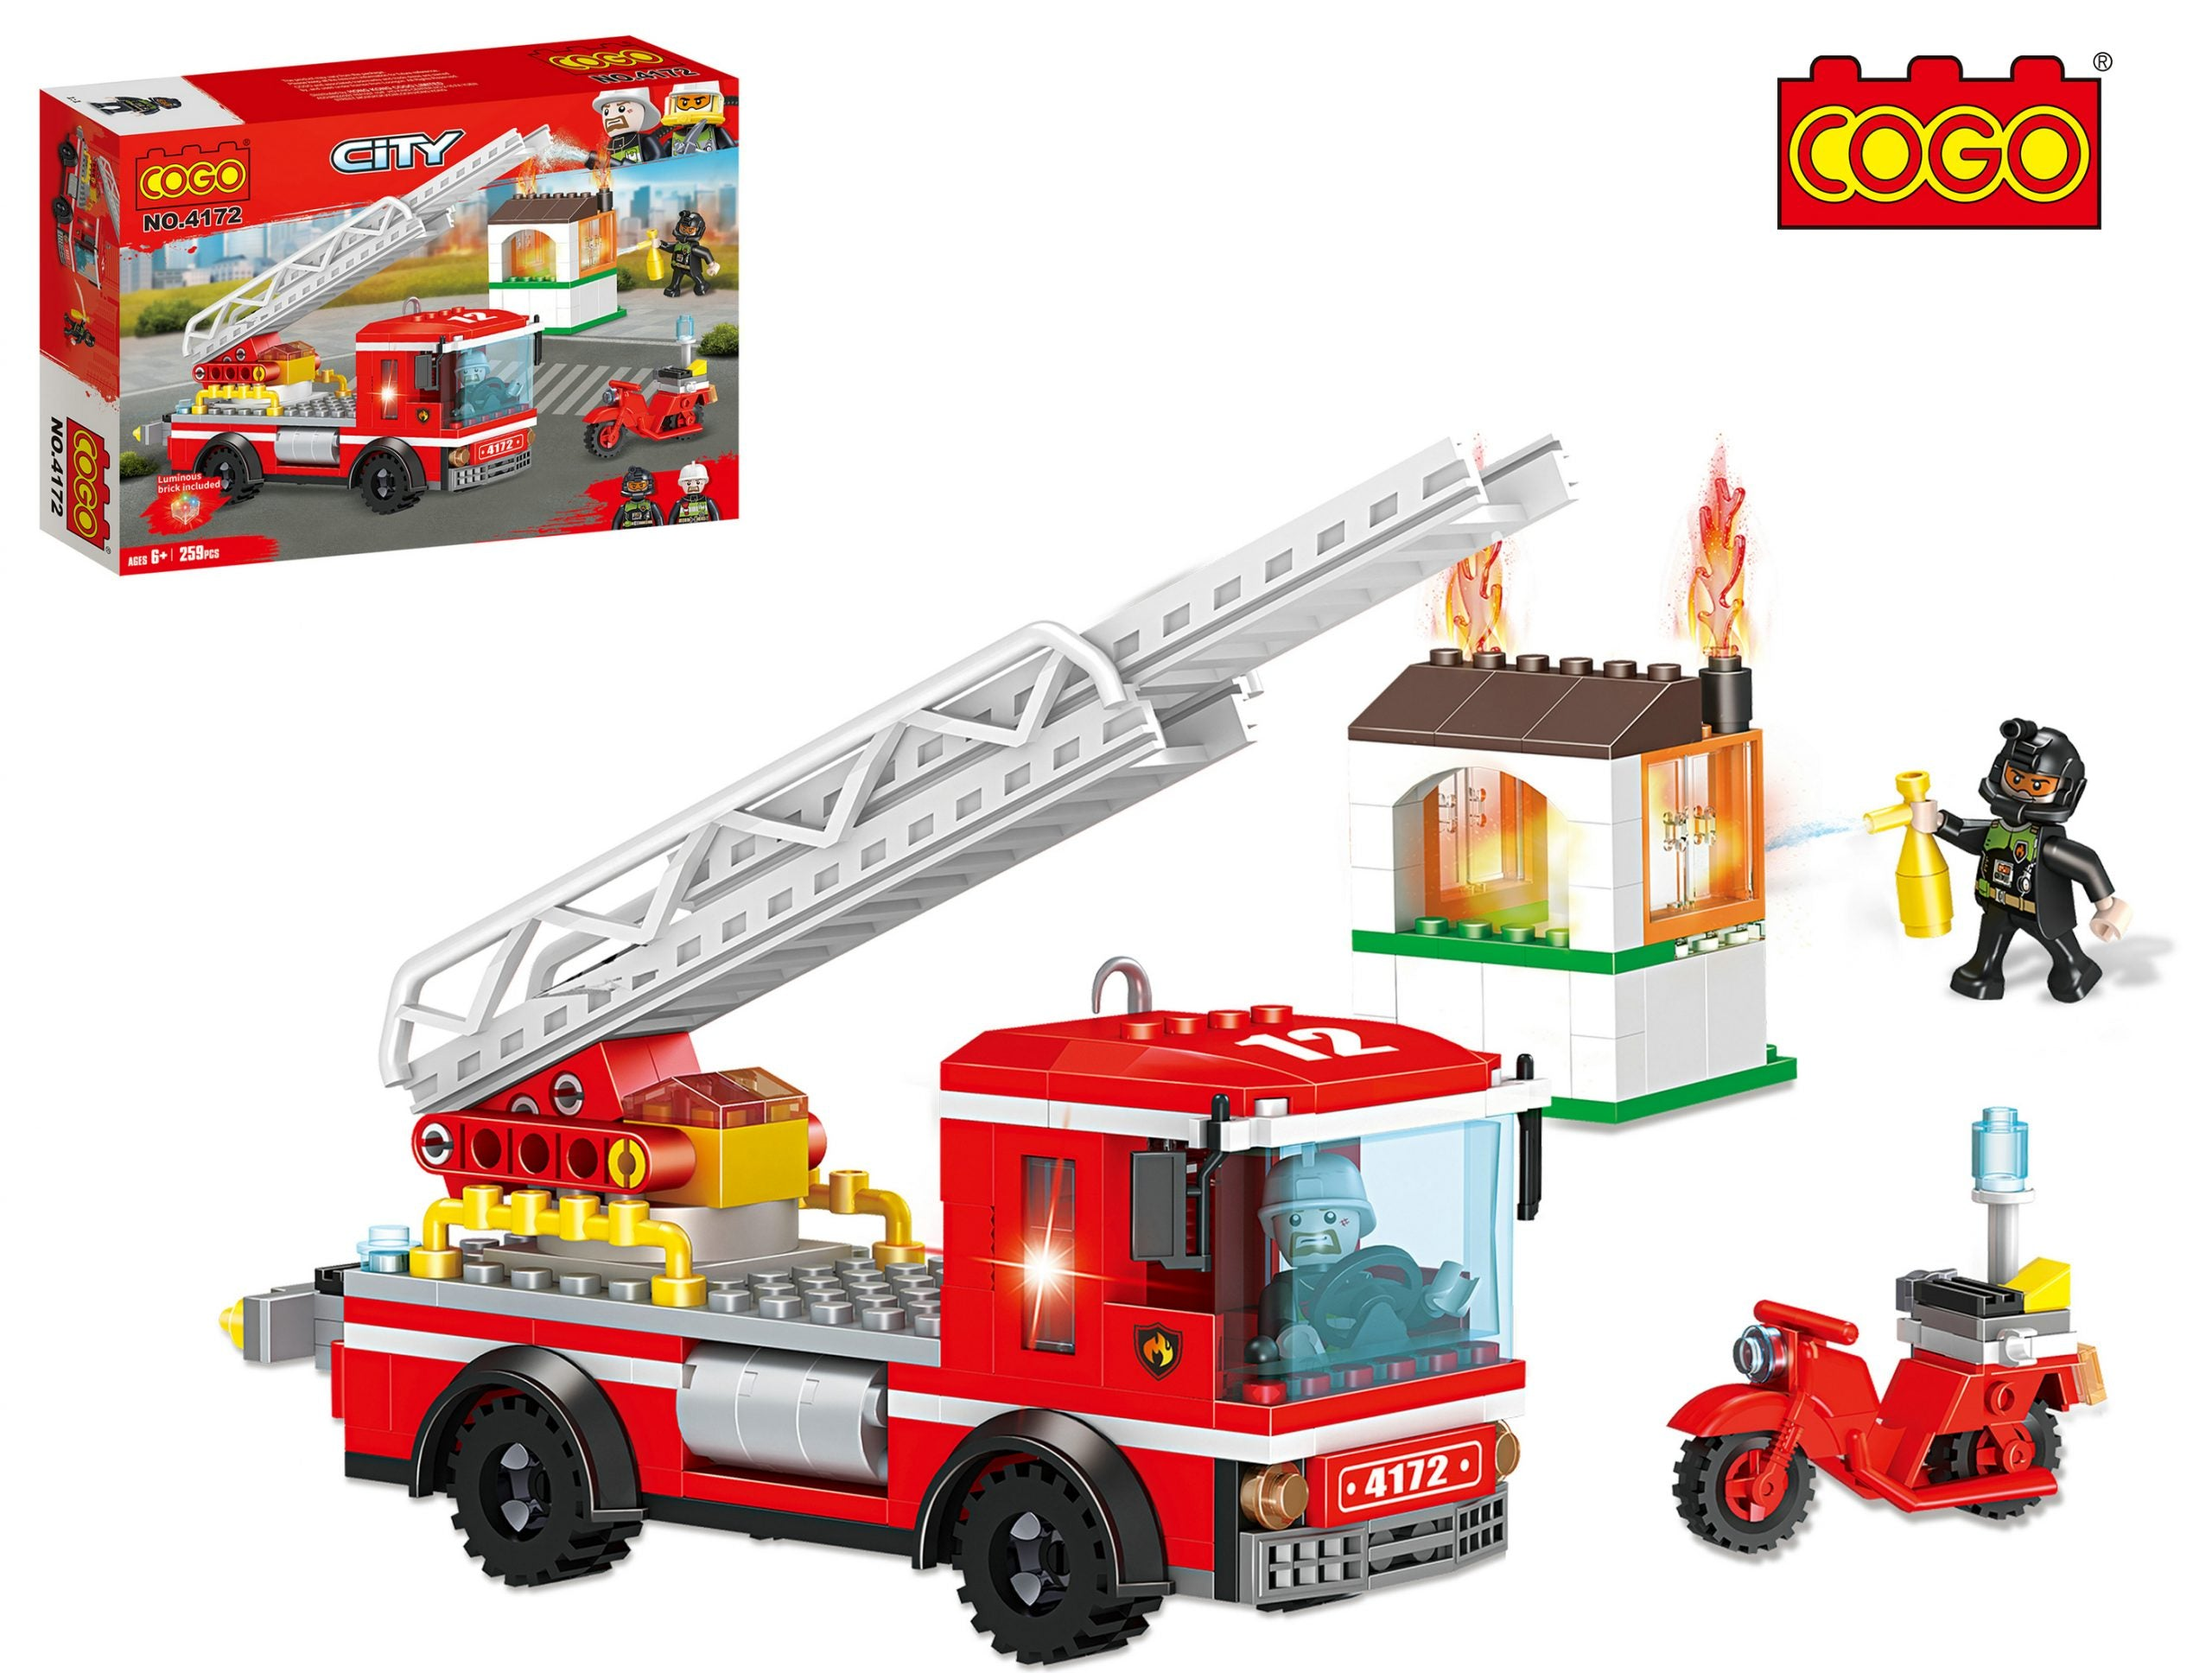 COGO legoingly kid toy brick 2020 kid block build Blocks toy Building Fire rescue truck-3